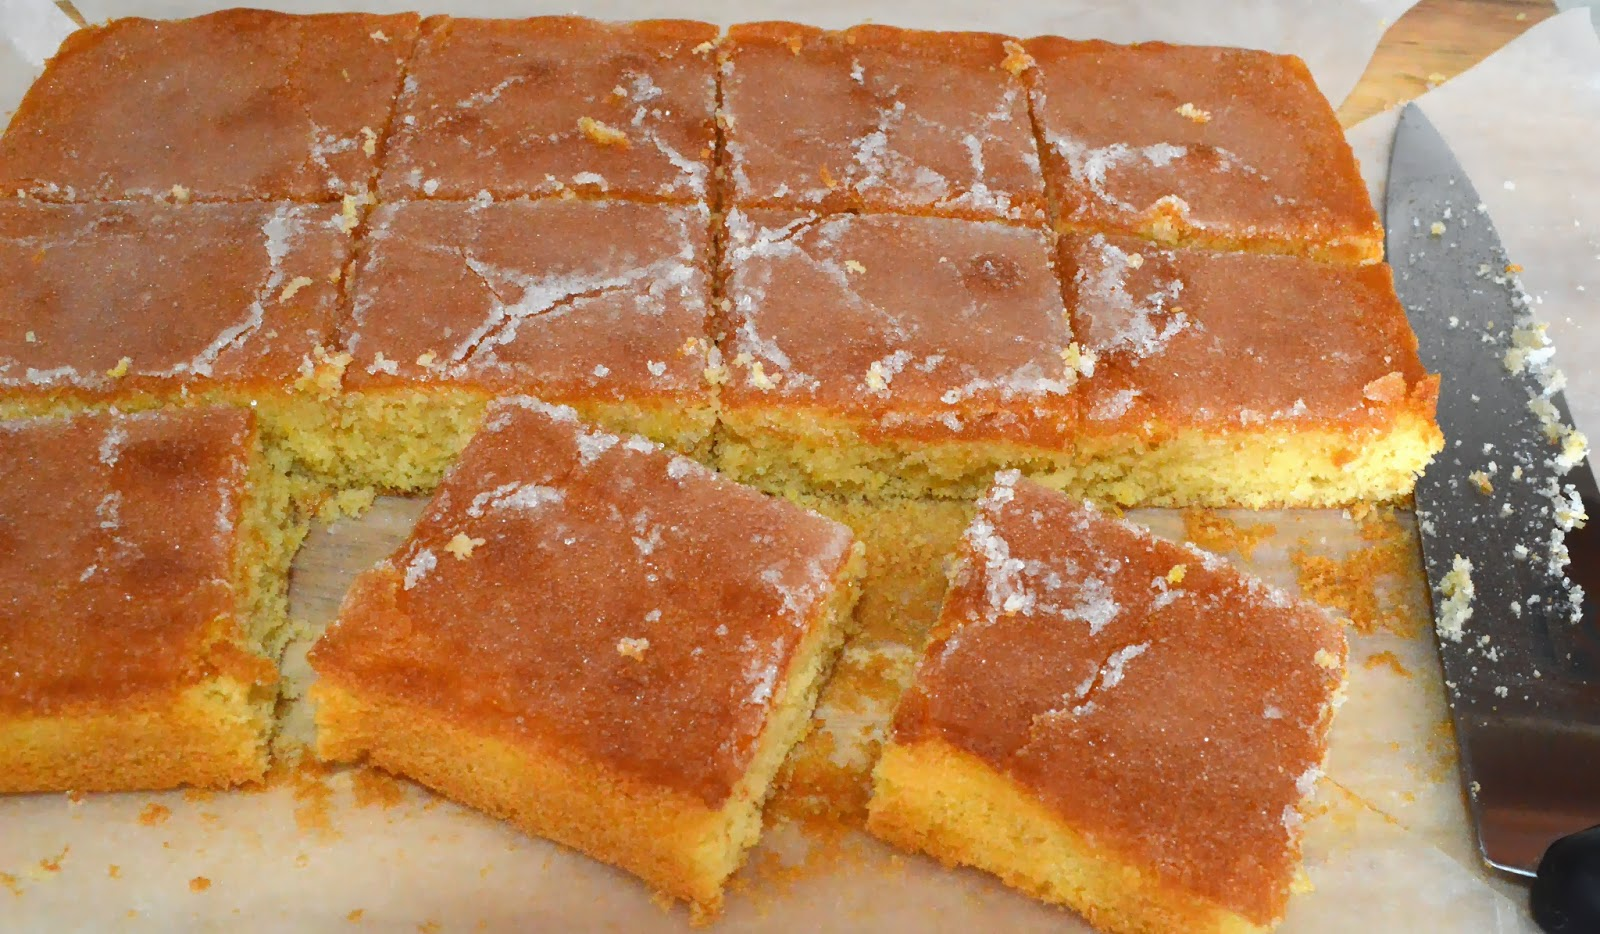 The Perfect Lemon Drizzle Cake